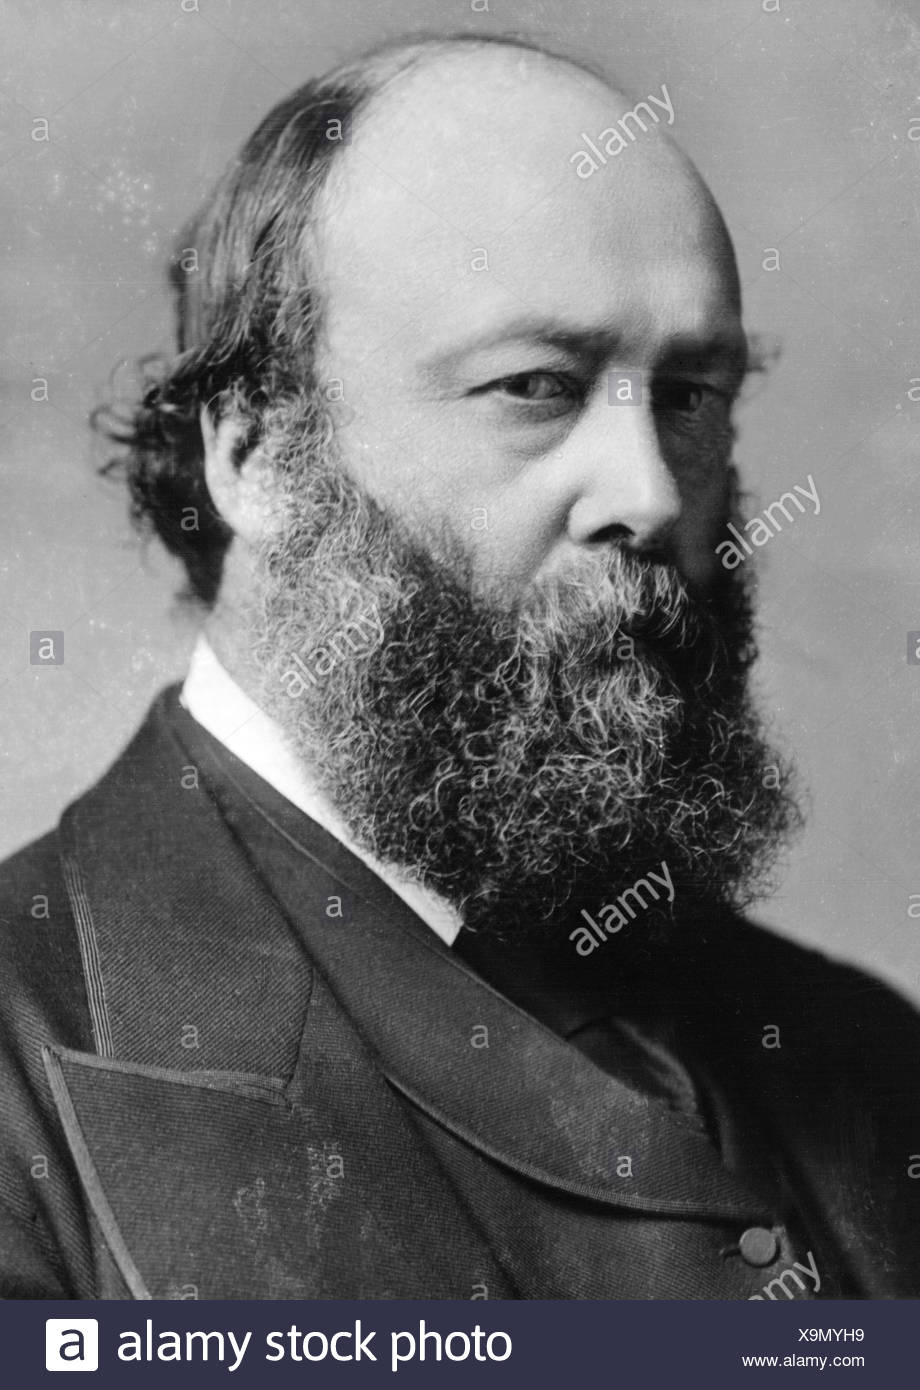 Gascoyne-Cecil, Robert, 3.2.1830 - 22.8.1903, Marquess of Salisbury 1868 - 1903, British politician, Premier Minister 23.6.1883 - 26.6.1886, 25.7.1886 - 11.8.1892 and 25.6.1895 - 11.1902, portrait, , Additional-Rights-Clearances-NA - Stock Image